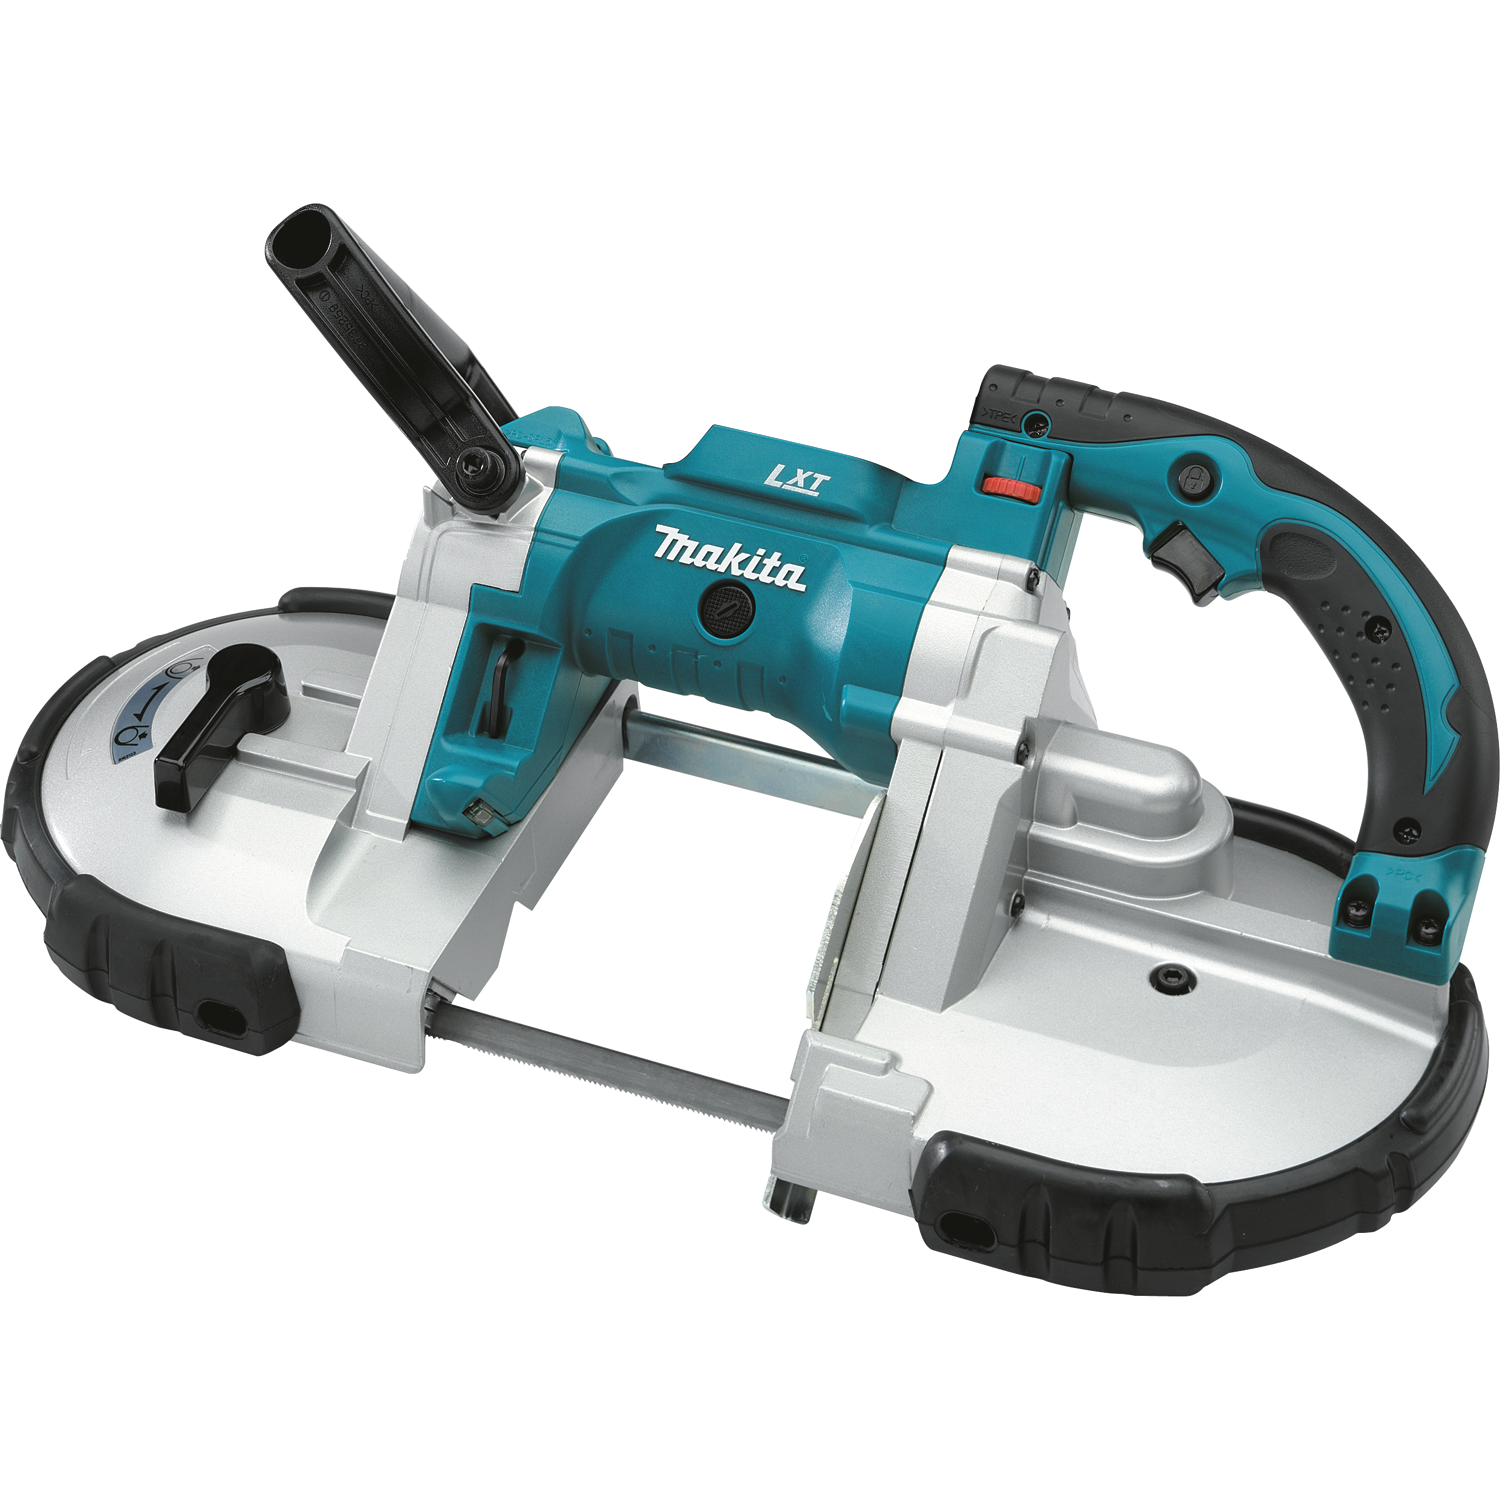 Makita usa product details xbp02z xbp02z greentooth Image collections